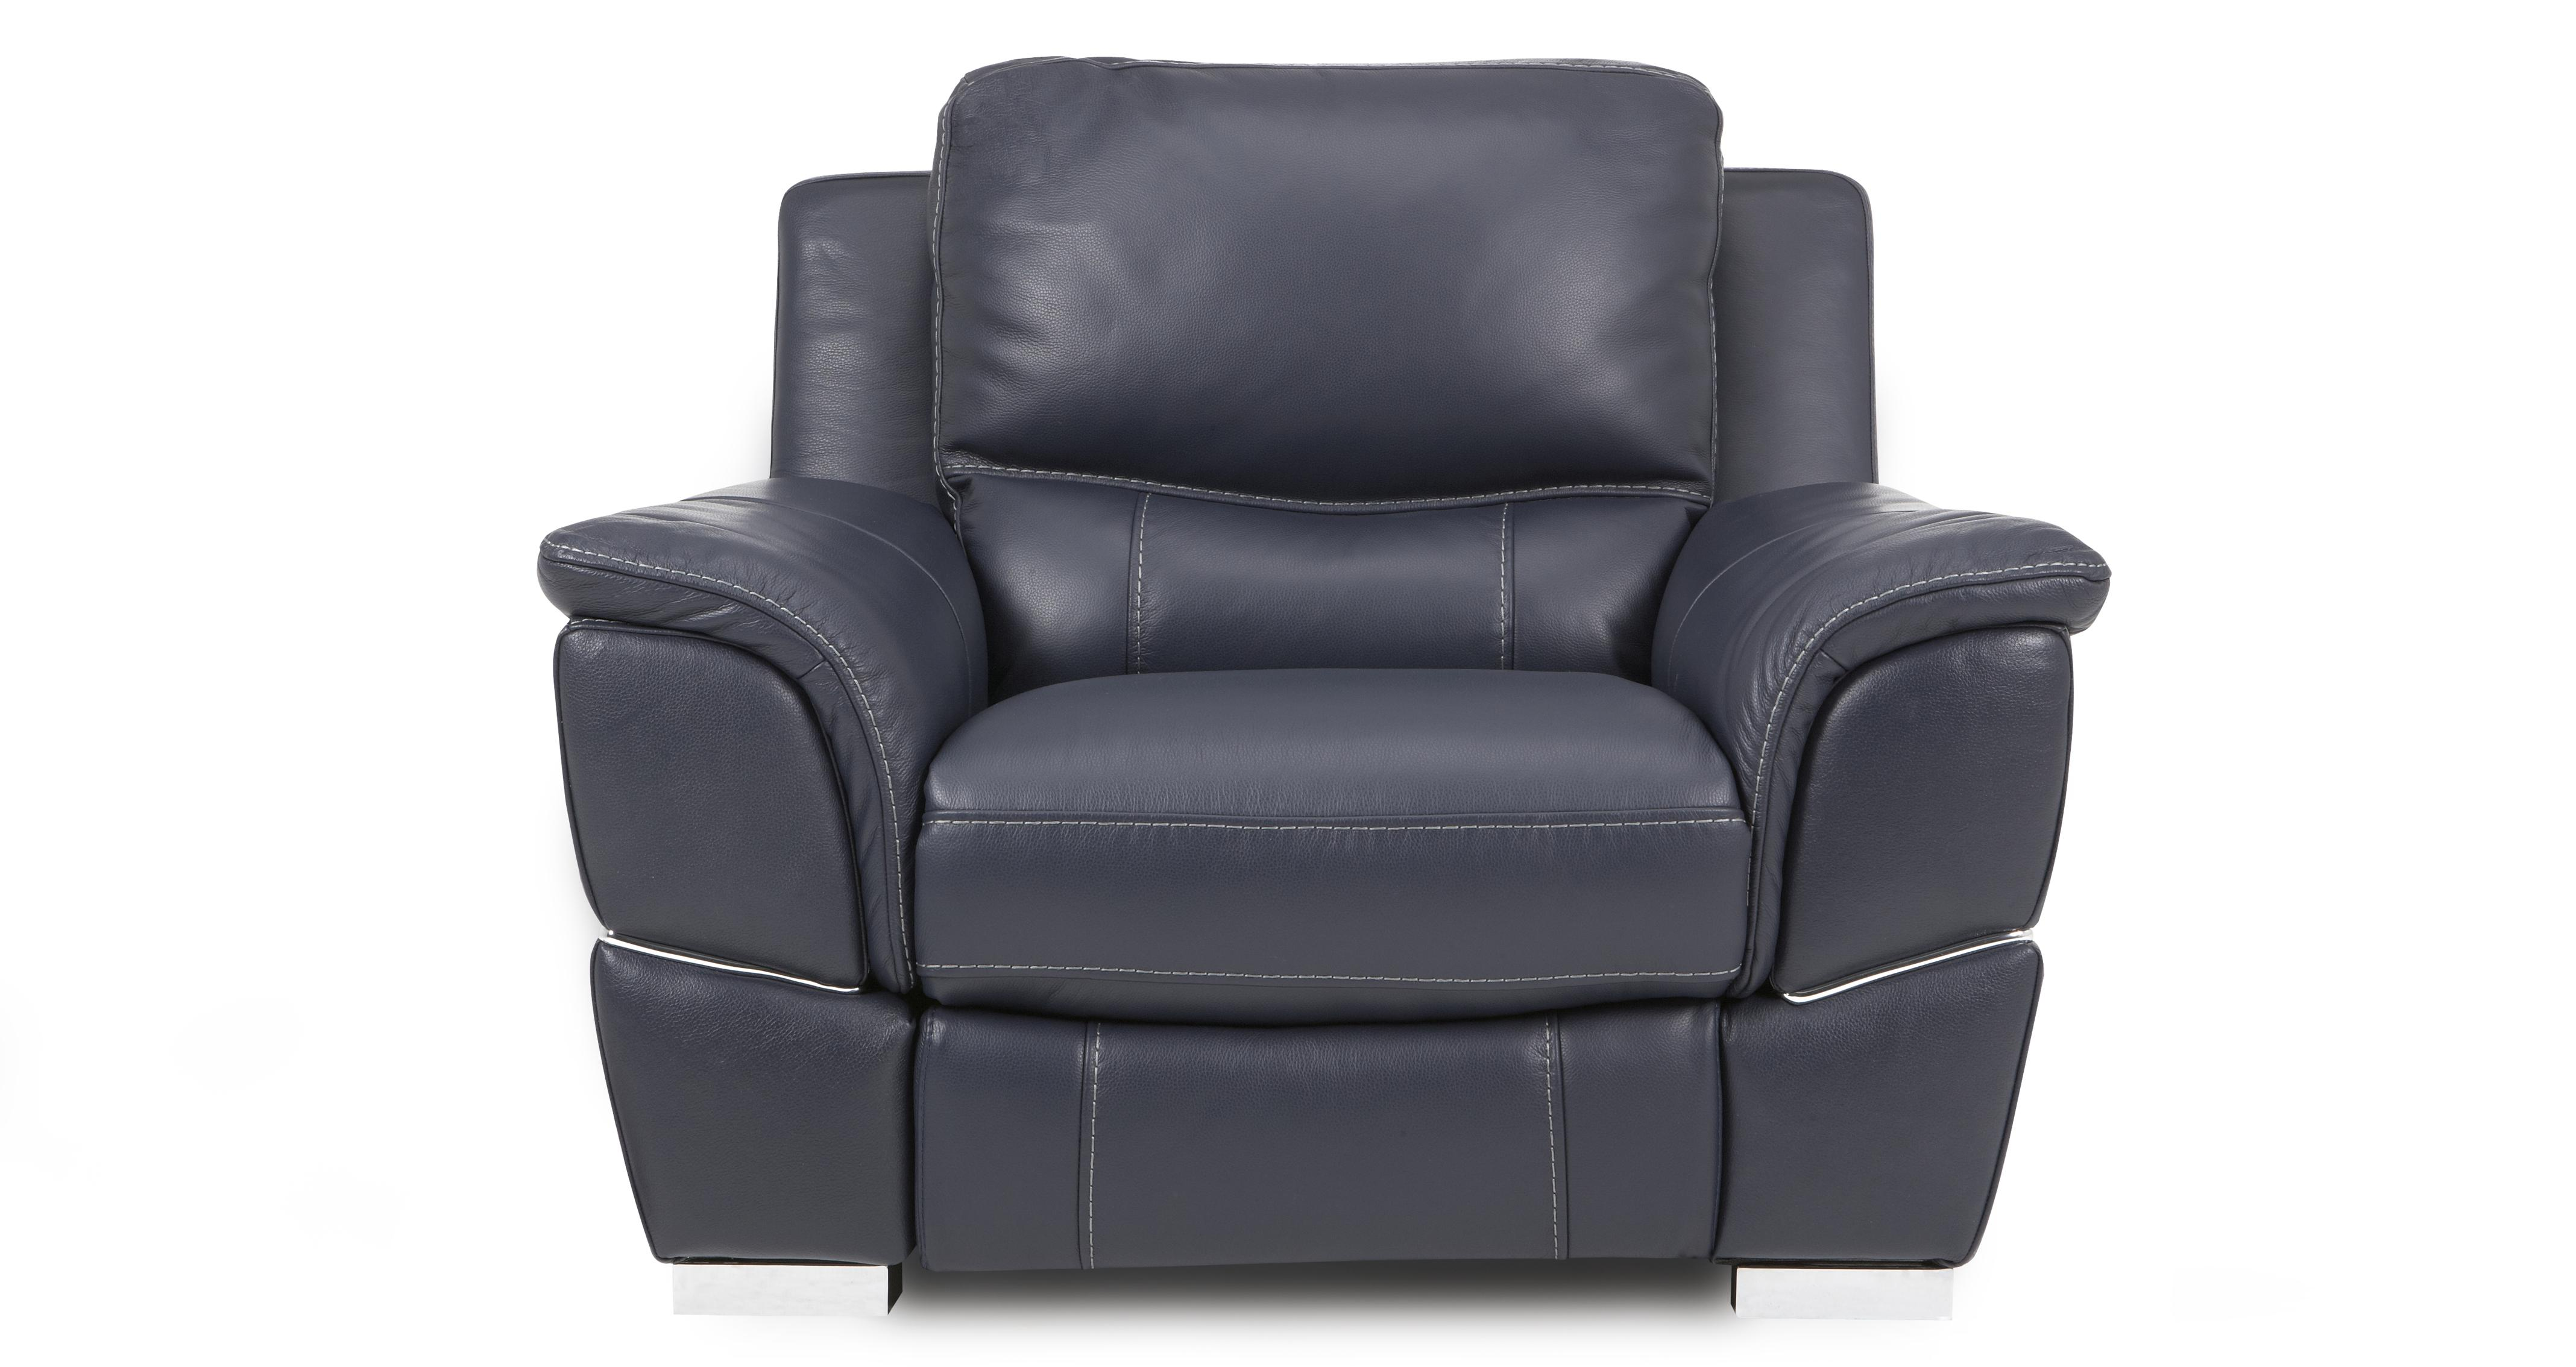 Small Recliners For Bedroom Chairs In Styles Including Swivel Recliners Dfs